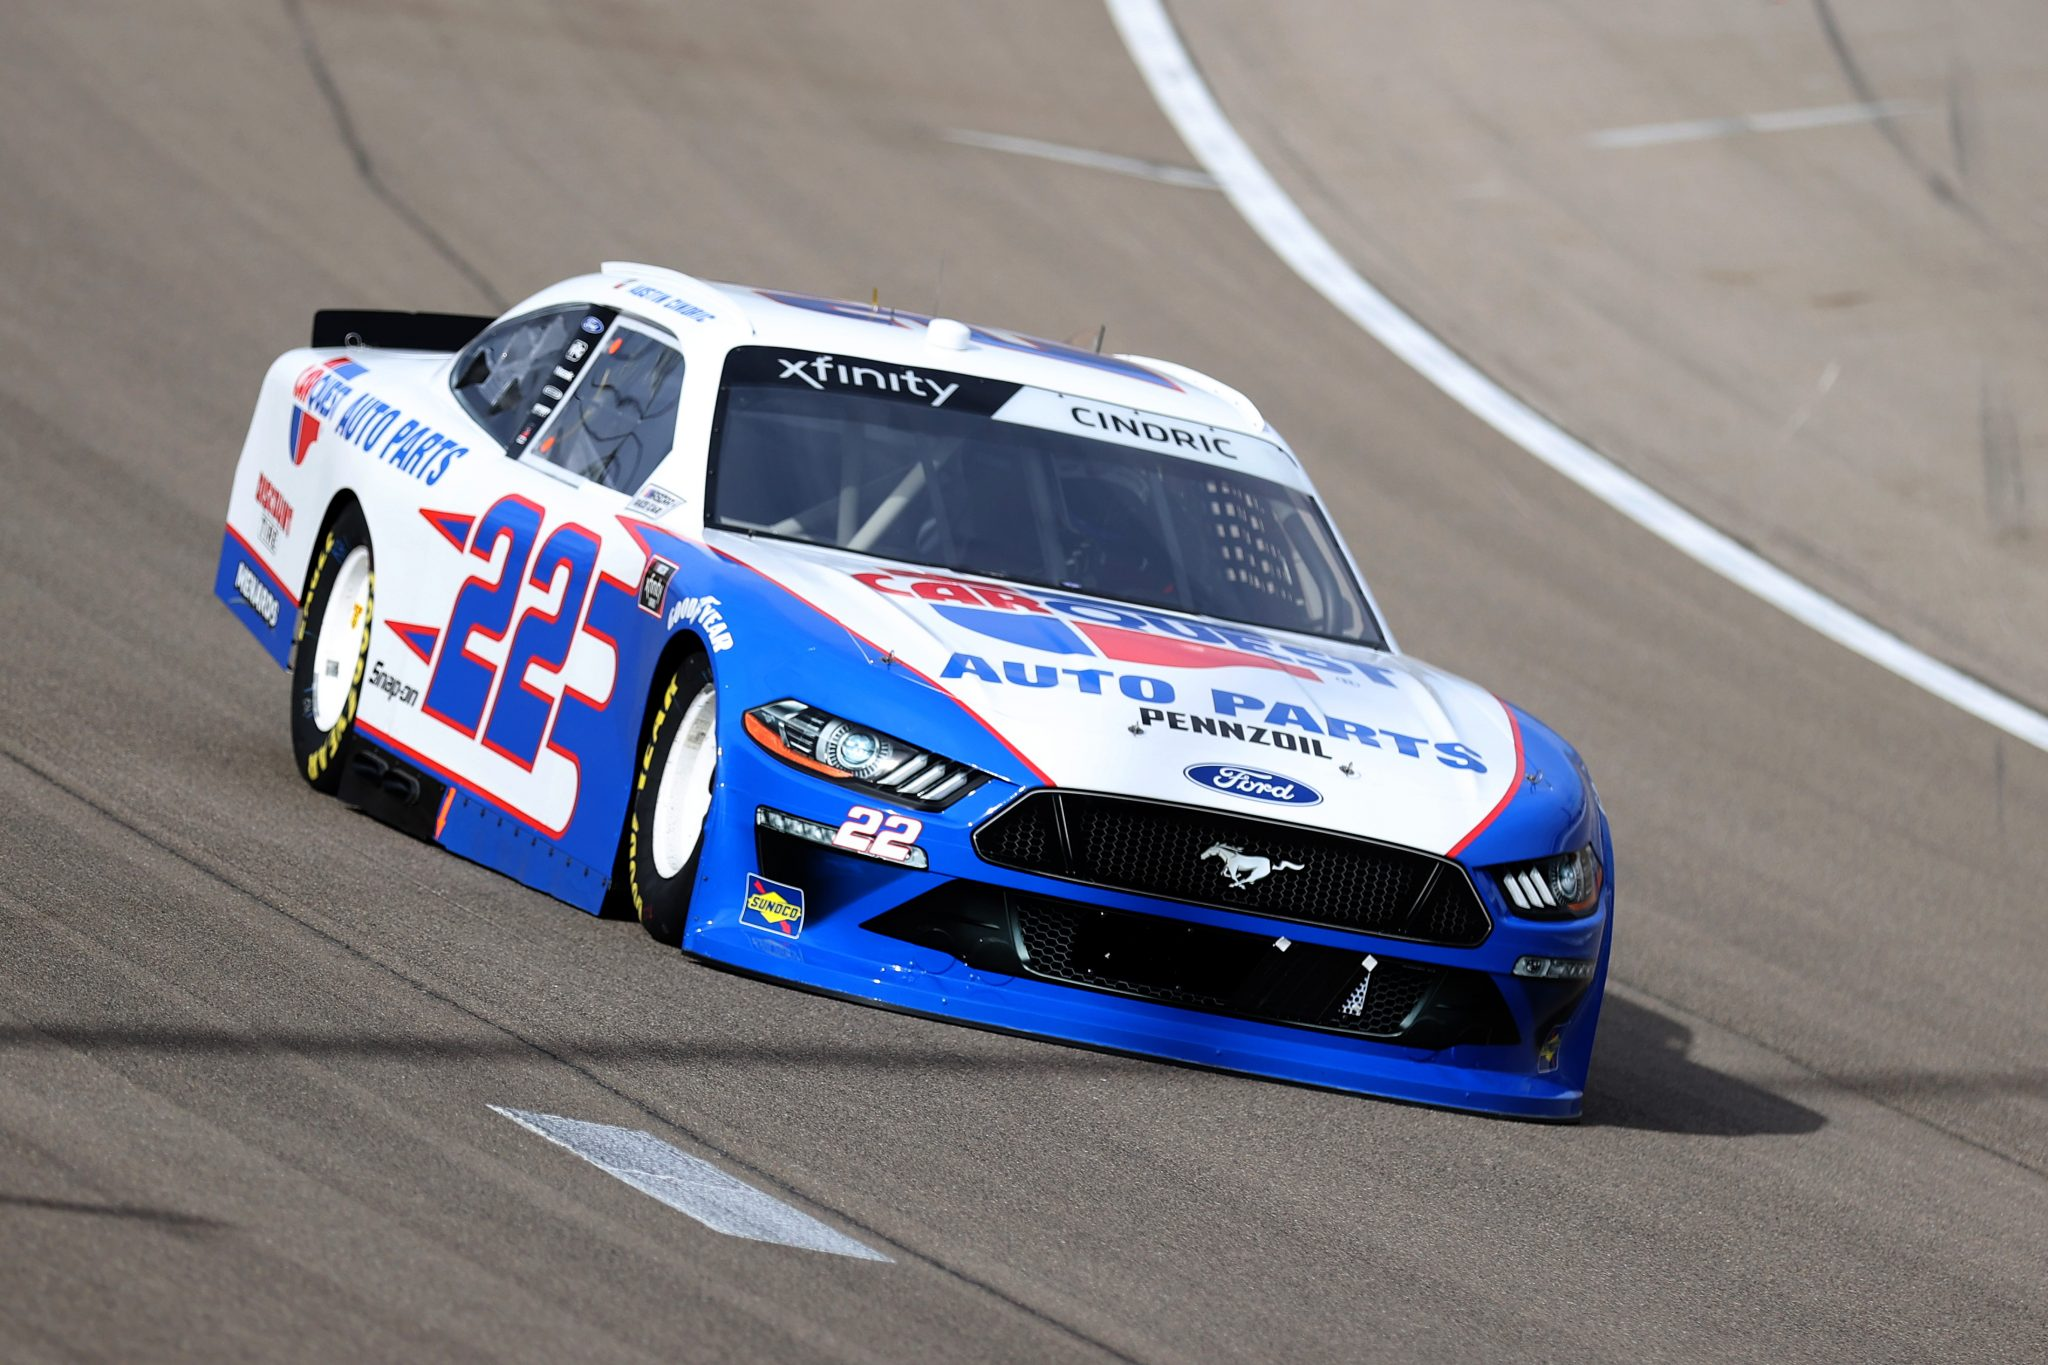 LAS VEGAS, NEVADA - MARCH 06: Austin Cindric, driver of the #22 Carquest Auto Parts Ford, drives during the NASCAR Xfinity Series Alsco Uniforms 300 at The Bullring at Las Vegas Motor Speedway on March 06, 2021 in Las Vegas, Nevada. (Photo by Abbie Parr/Getty Images) | Getty Images